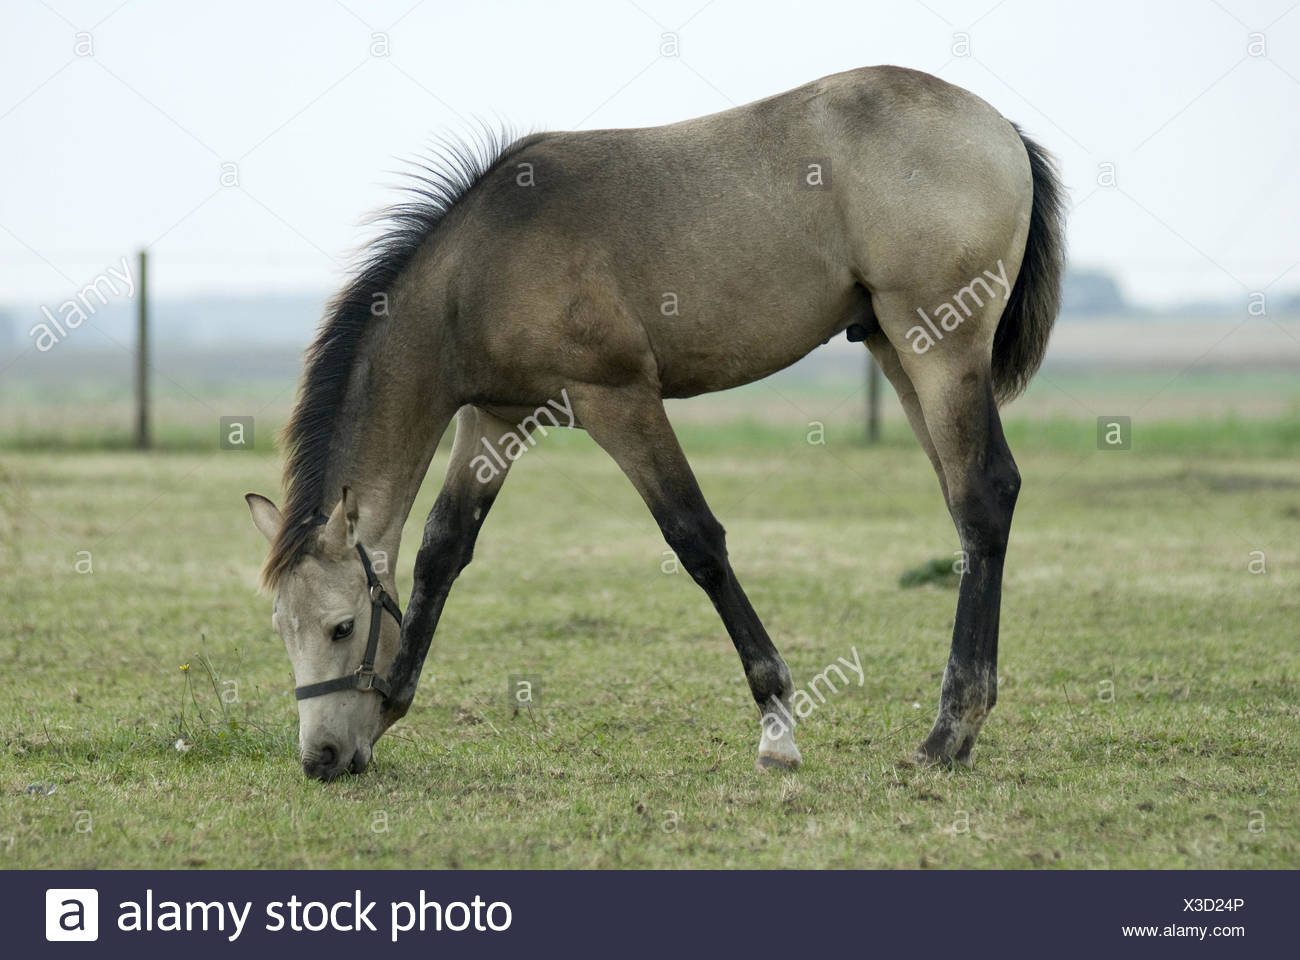 young horse,foal - Stock Image